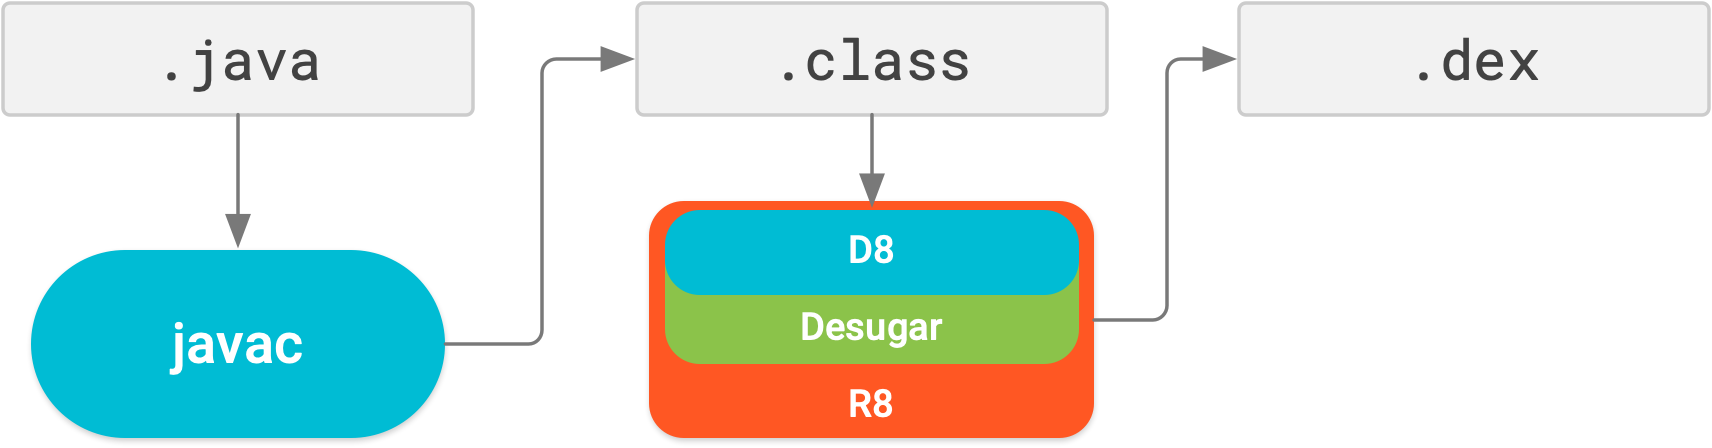 With R8, desugaring, shrinking, obfuscating, optimizing, and dexing         are all performed in a single compile step.